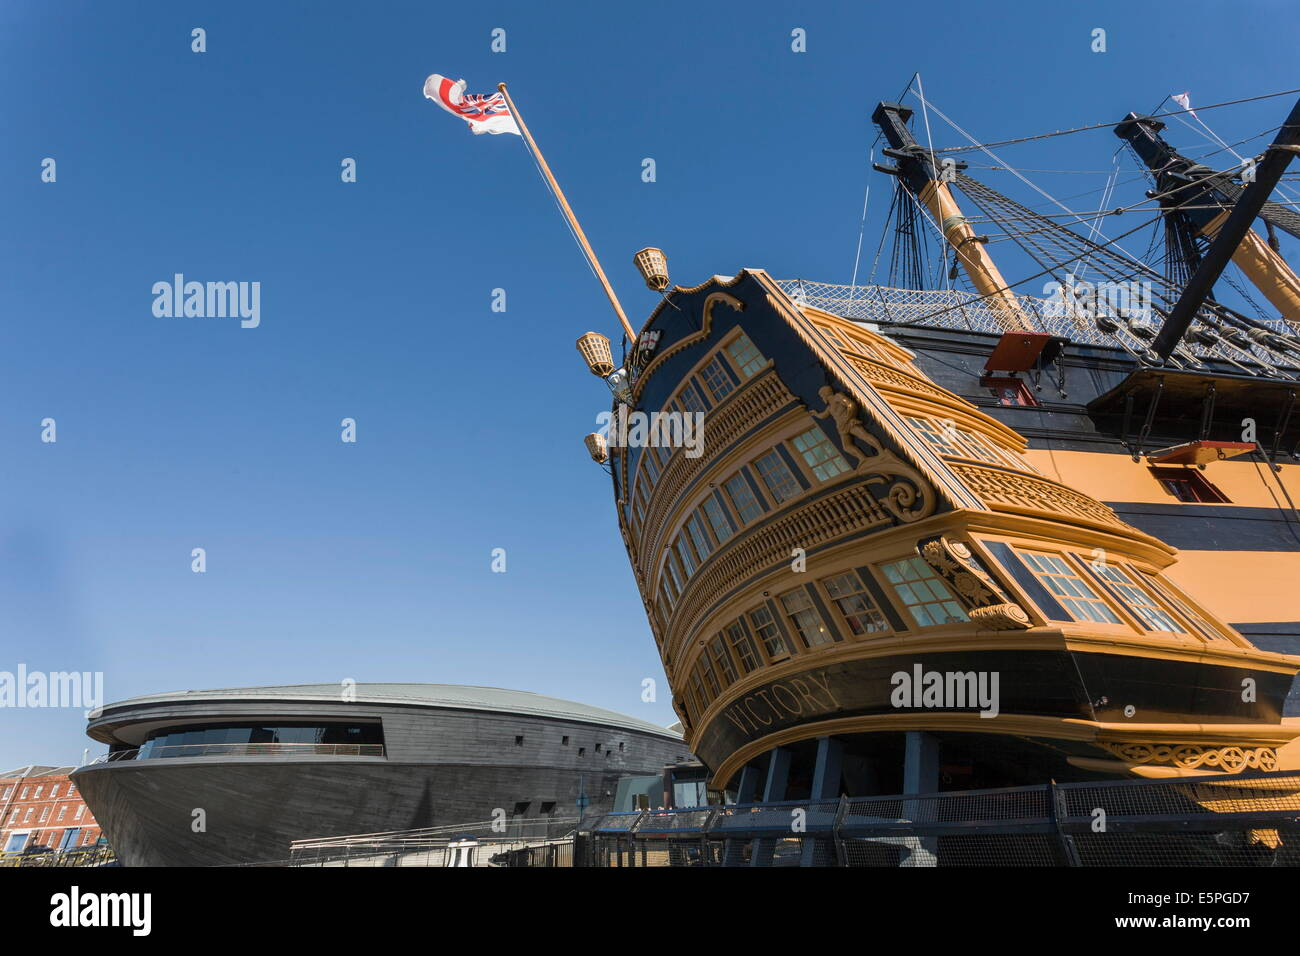 HMS Victory and the new Mary Rose Museum, HM Naval Base, Portsmouth Historic Dockyard, Portsmouth, Hampshire, England, - Stock Image